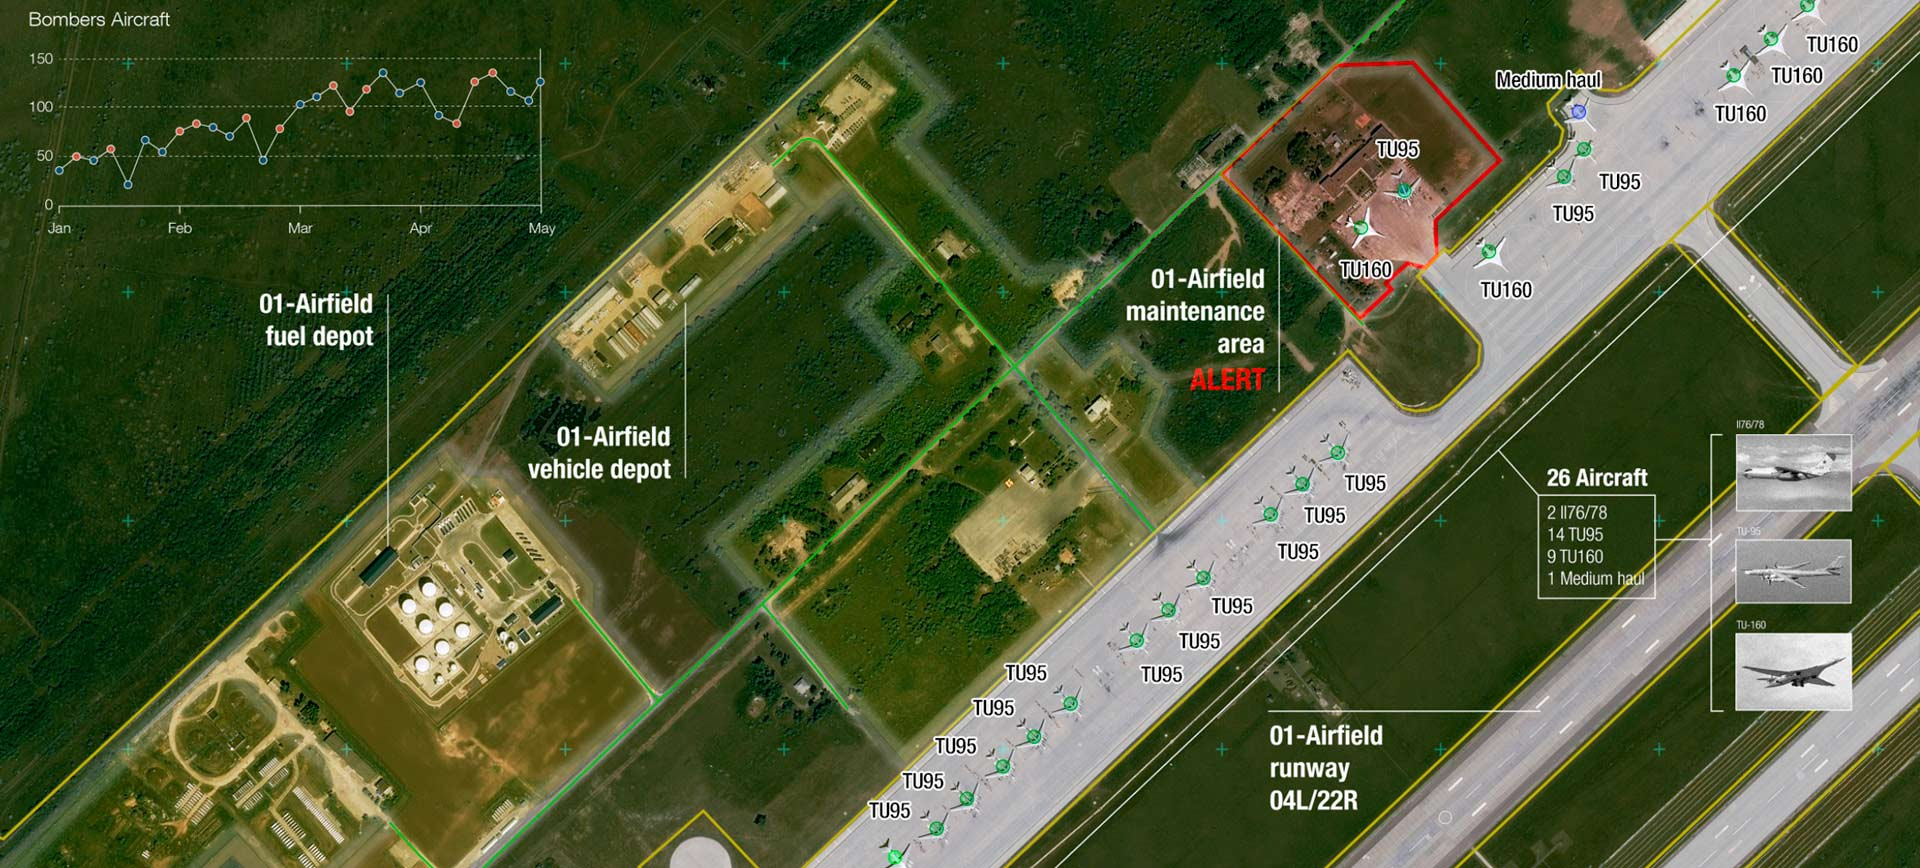 Airbus Intelligence provides automatic site surveillance with Defence Site Monitoring